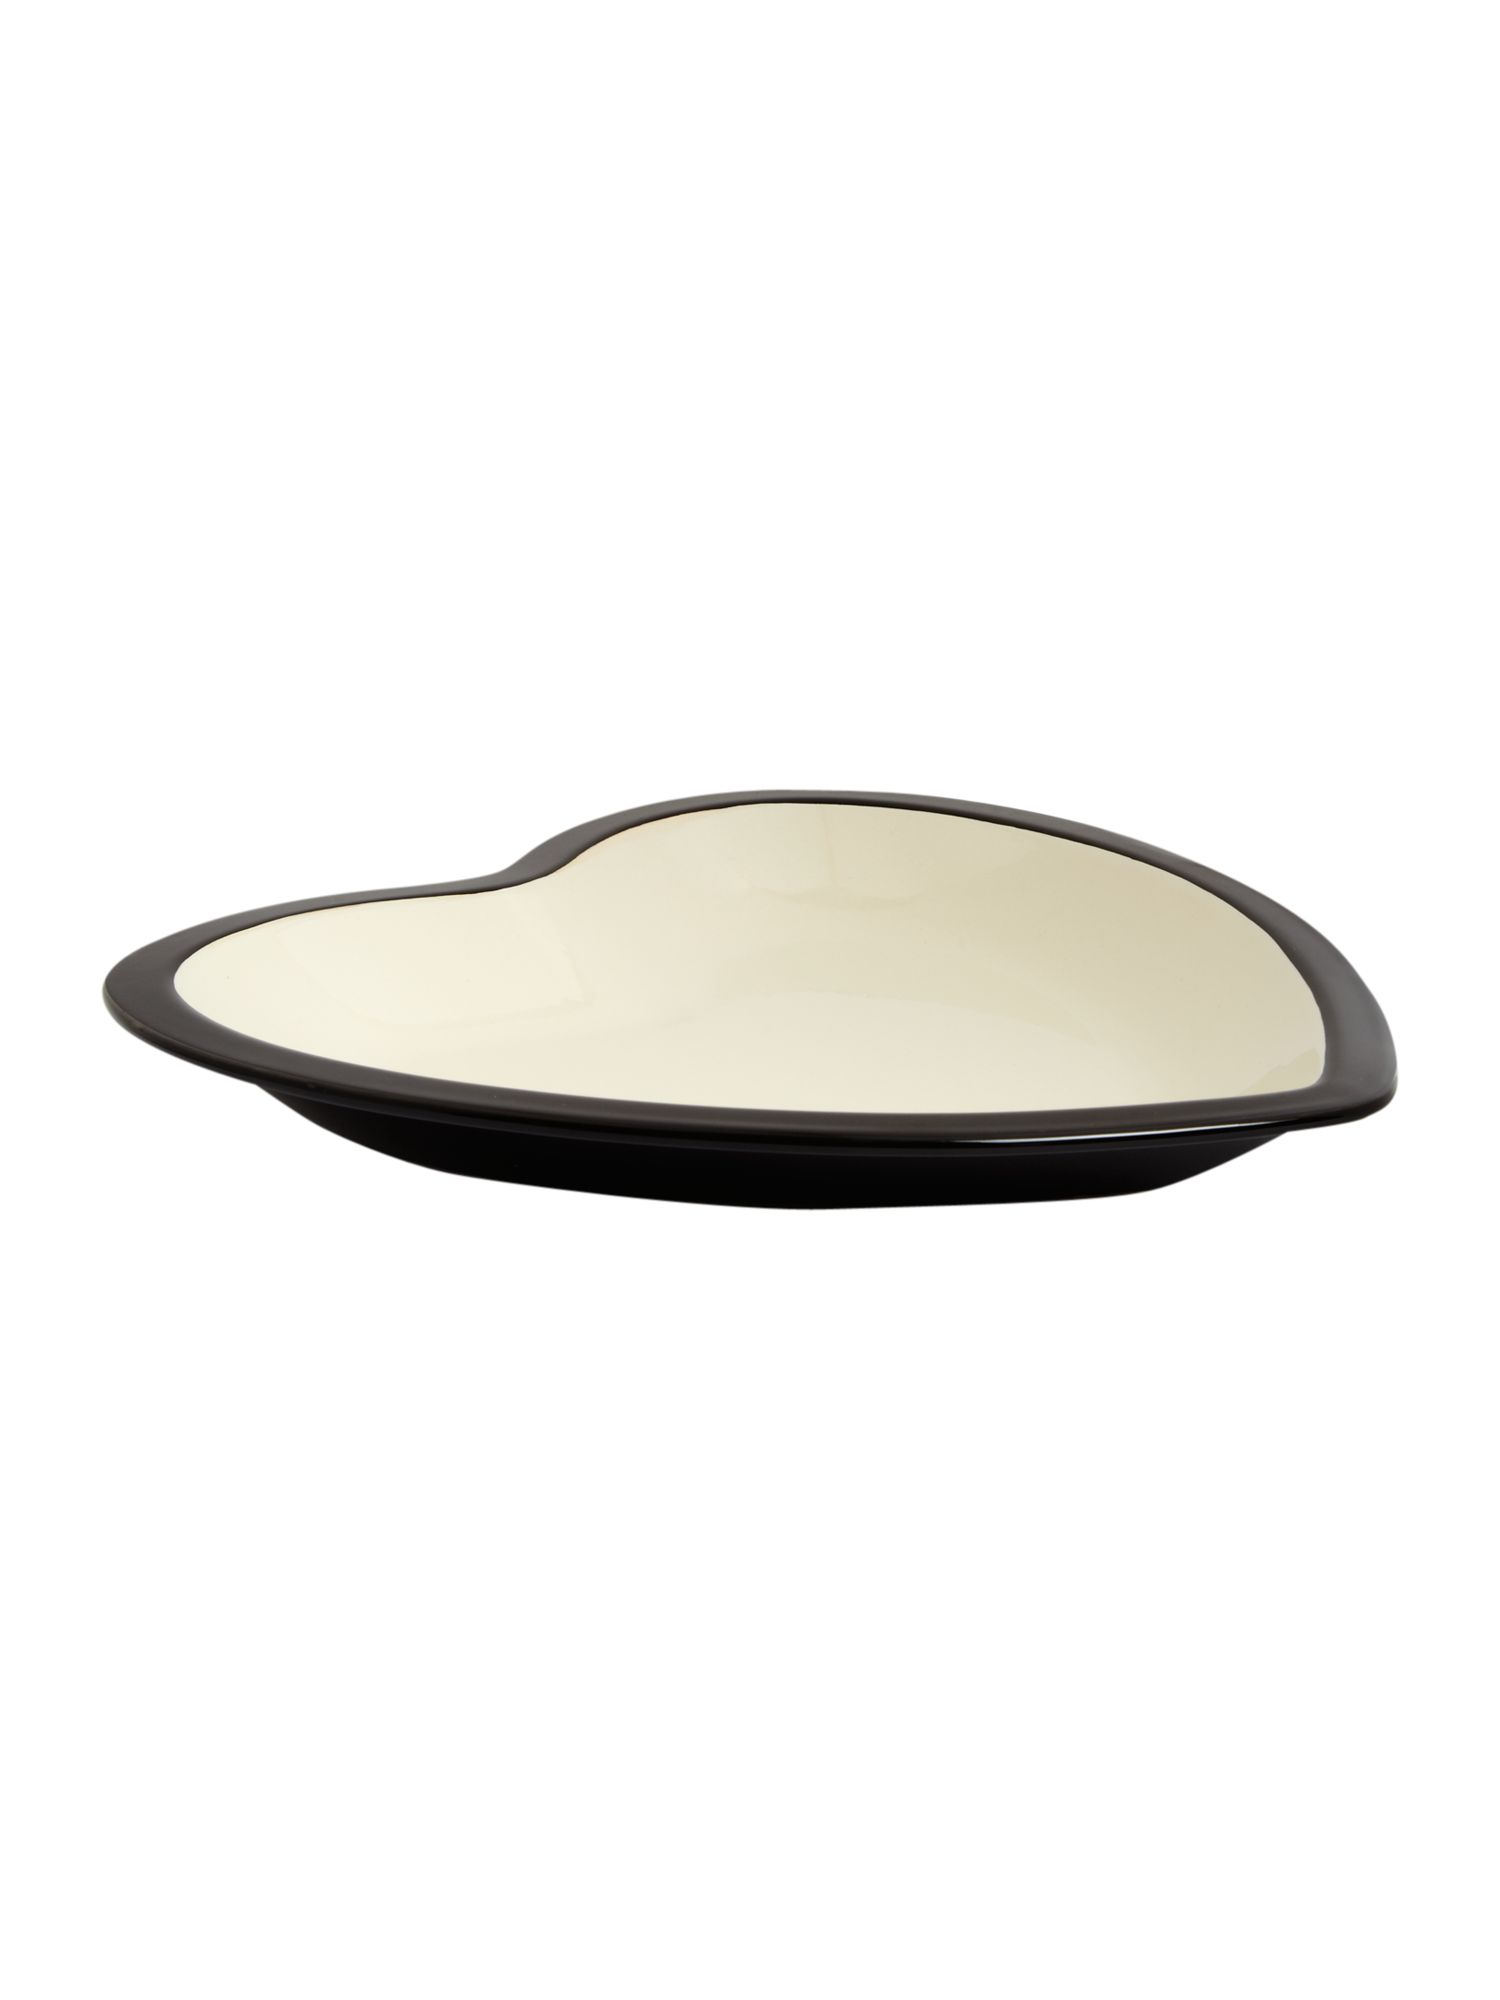 Maison heart shaped dish, Black